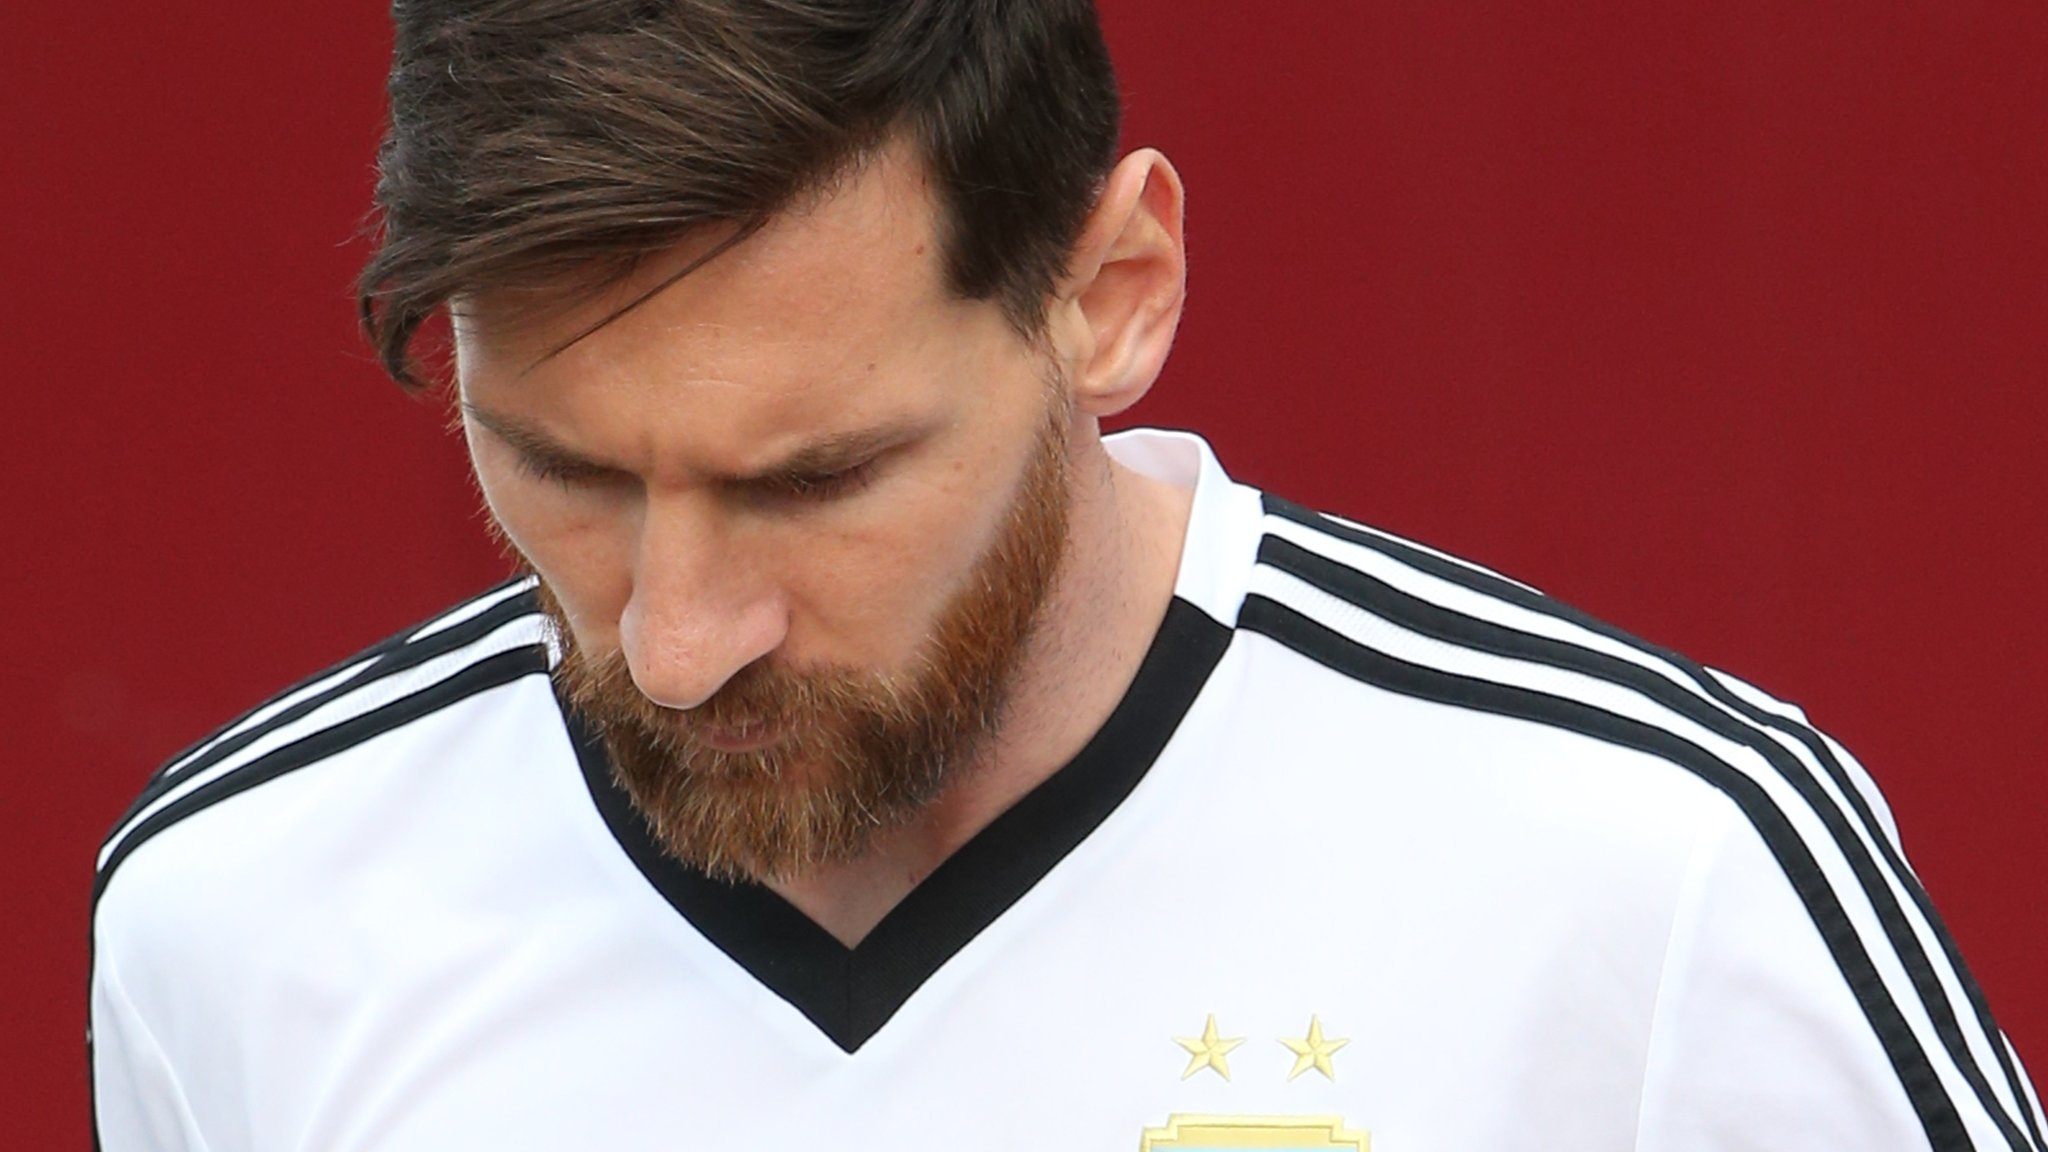 'Messi doesn't need to win World Cup to be all-time great'